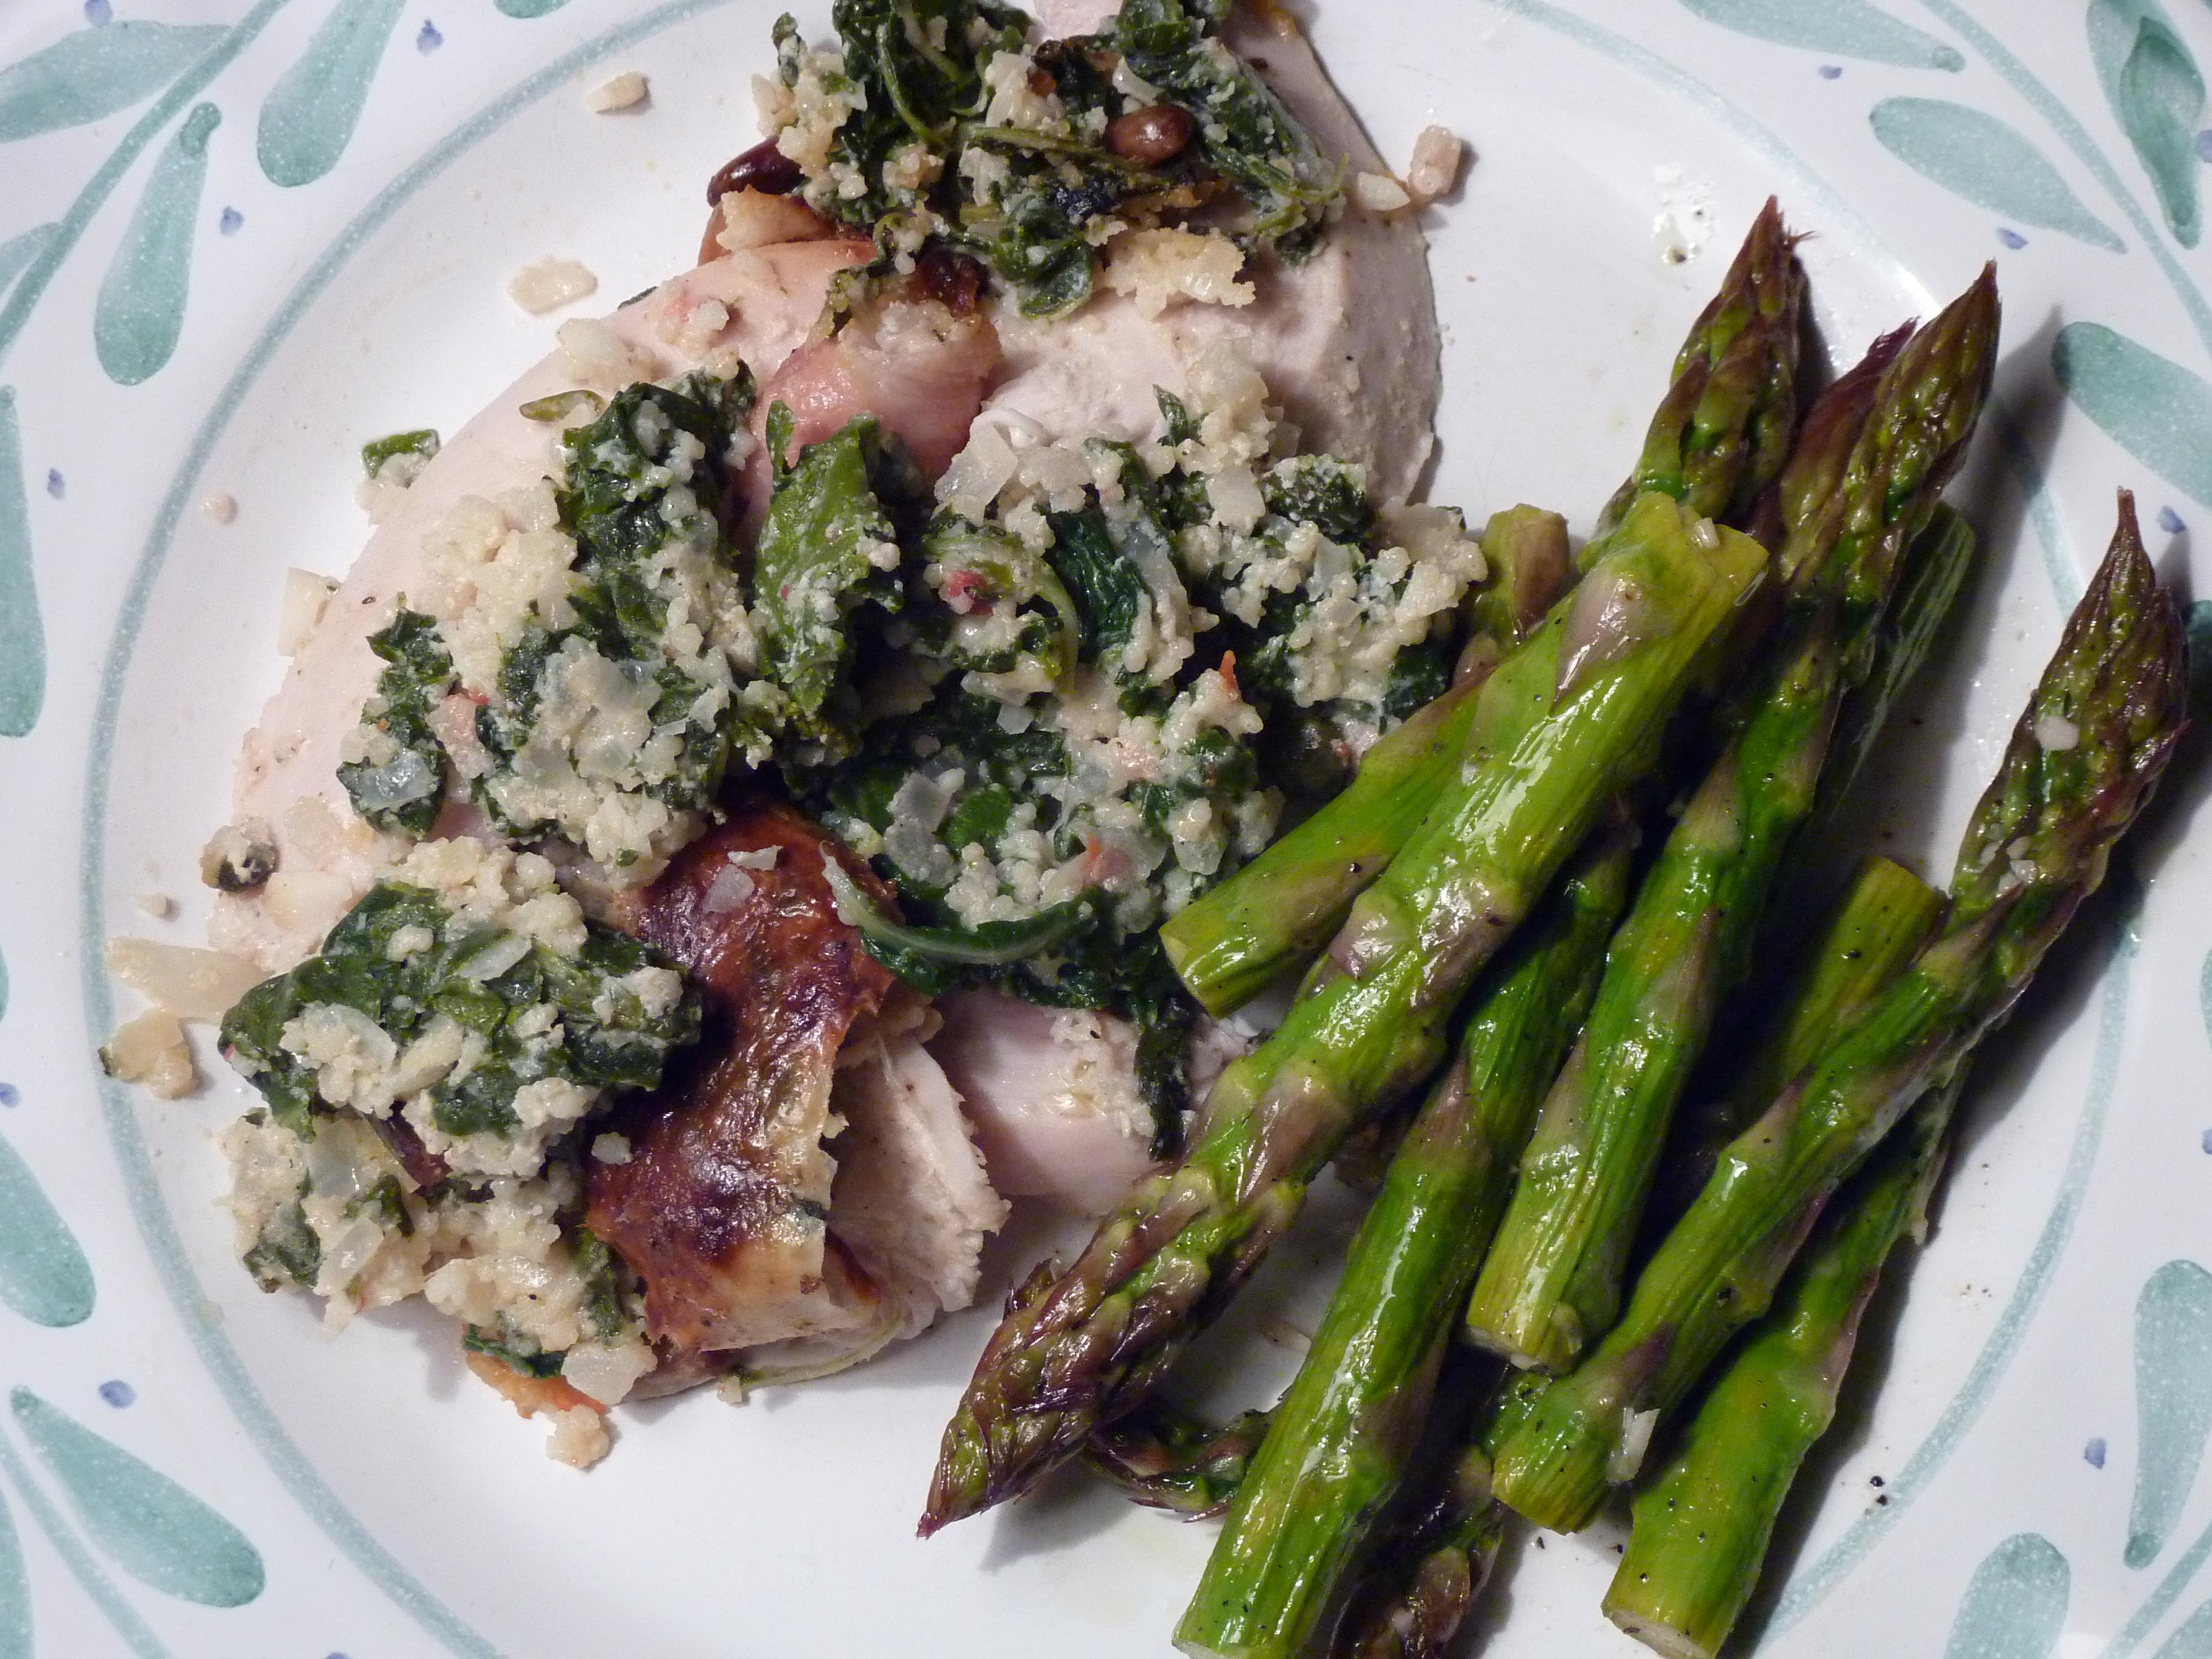 Tuscan Roasted Chicken Stuffed wtih Swiss Chard Couscous and Cheese